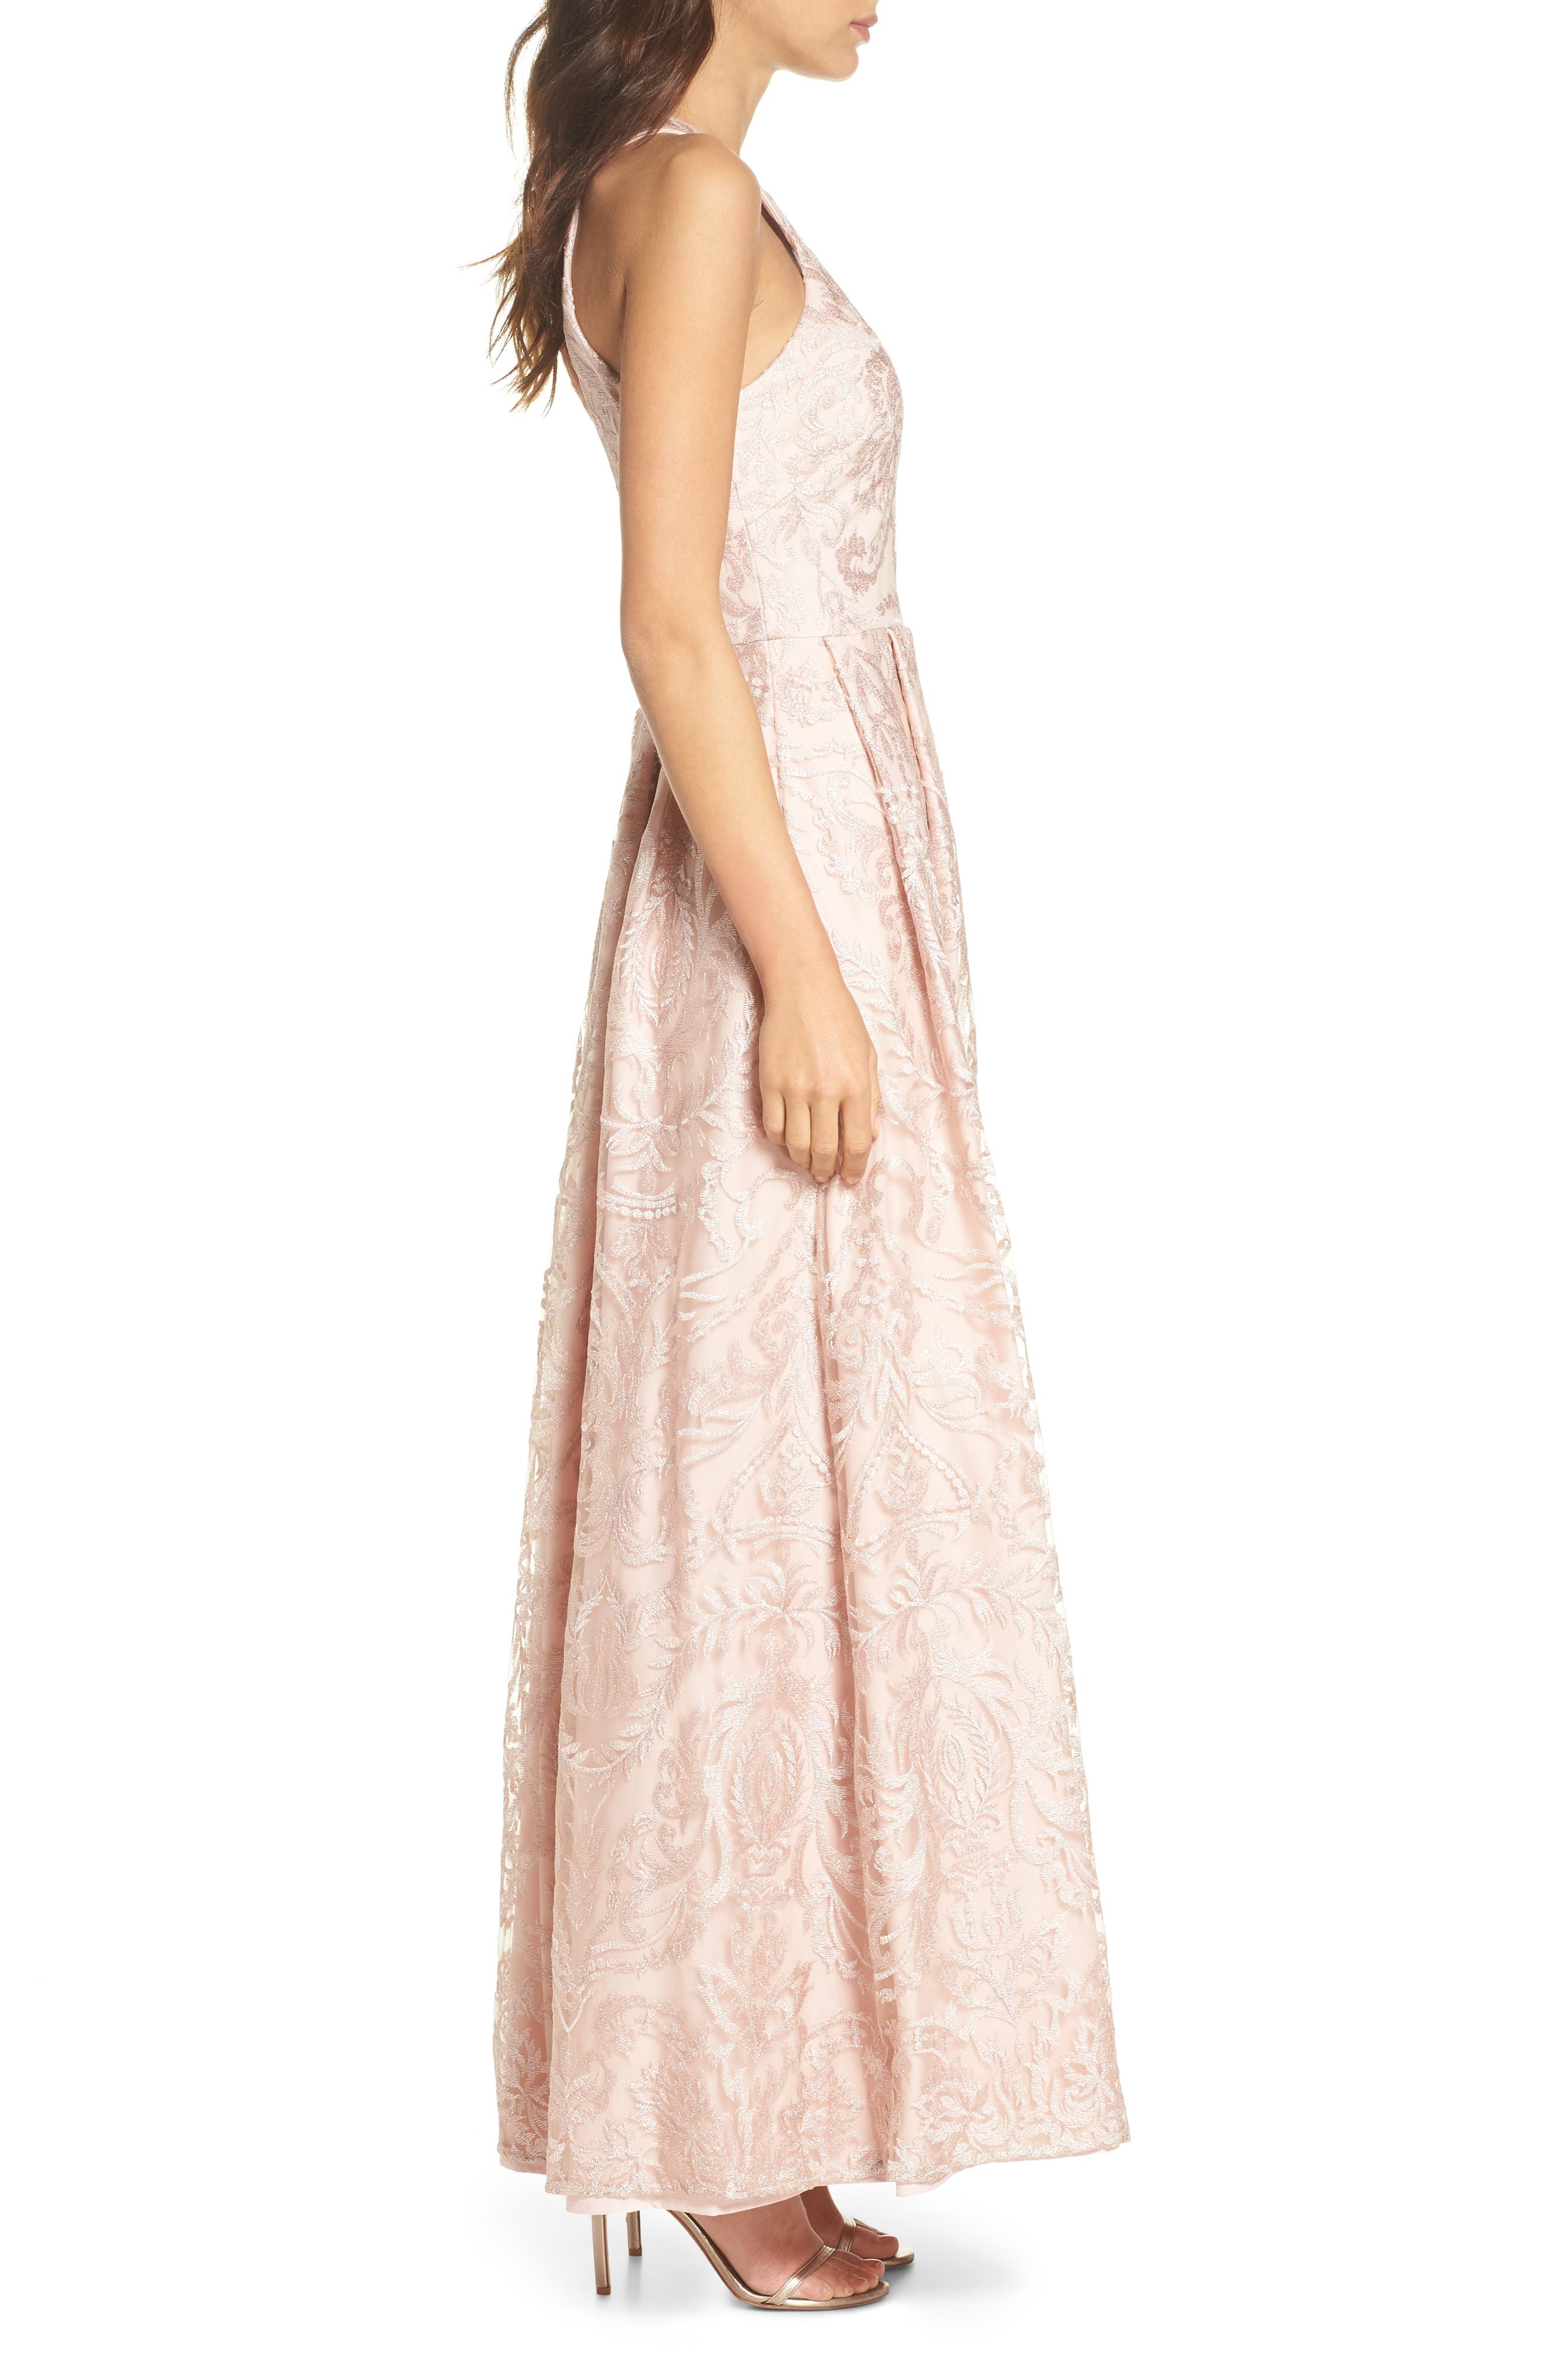 Keyhole Neck Embroidered Ballgown,                             Alternate thumbnail 3, color,                             Blush / Nude